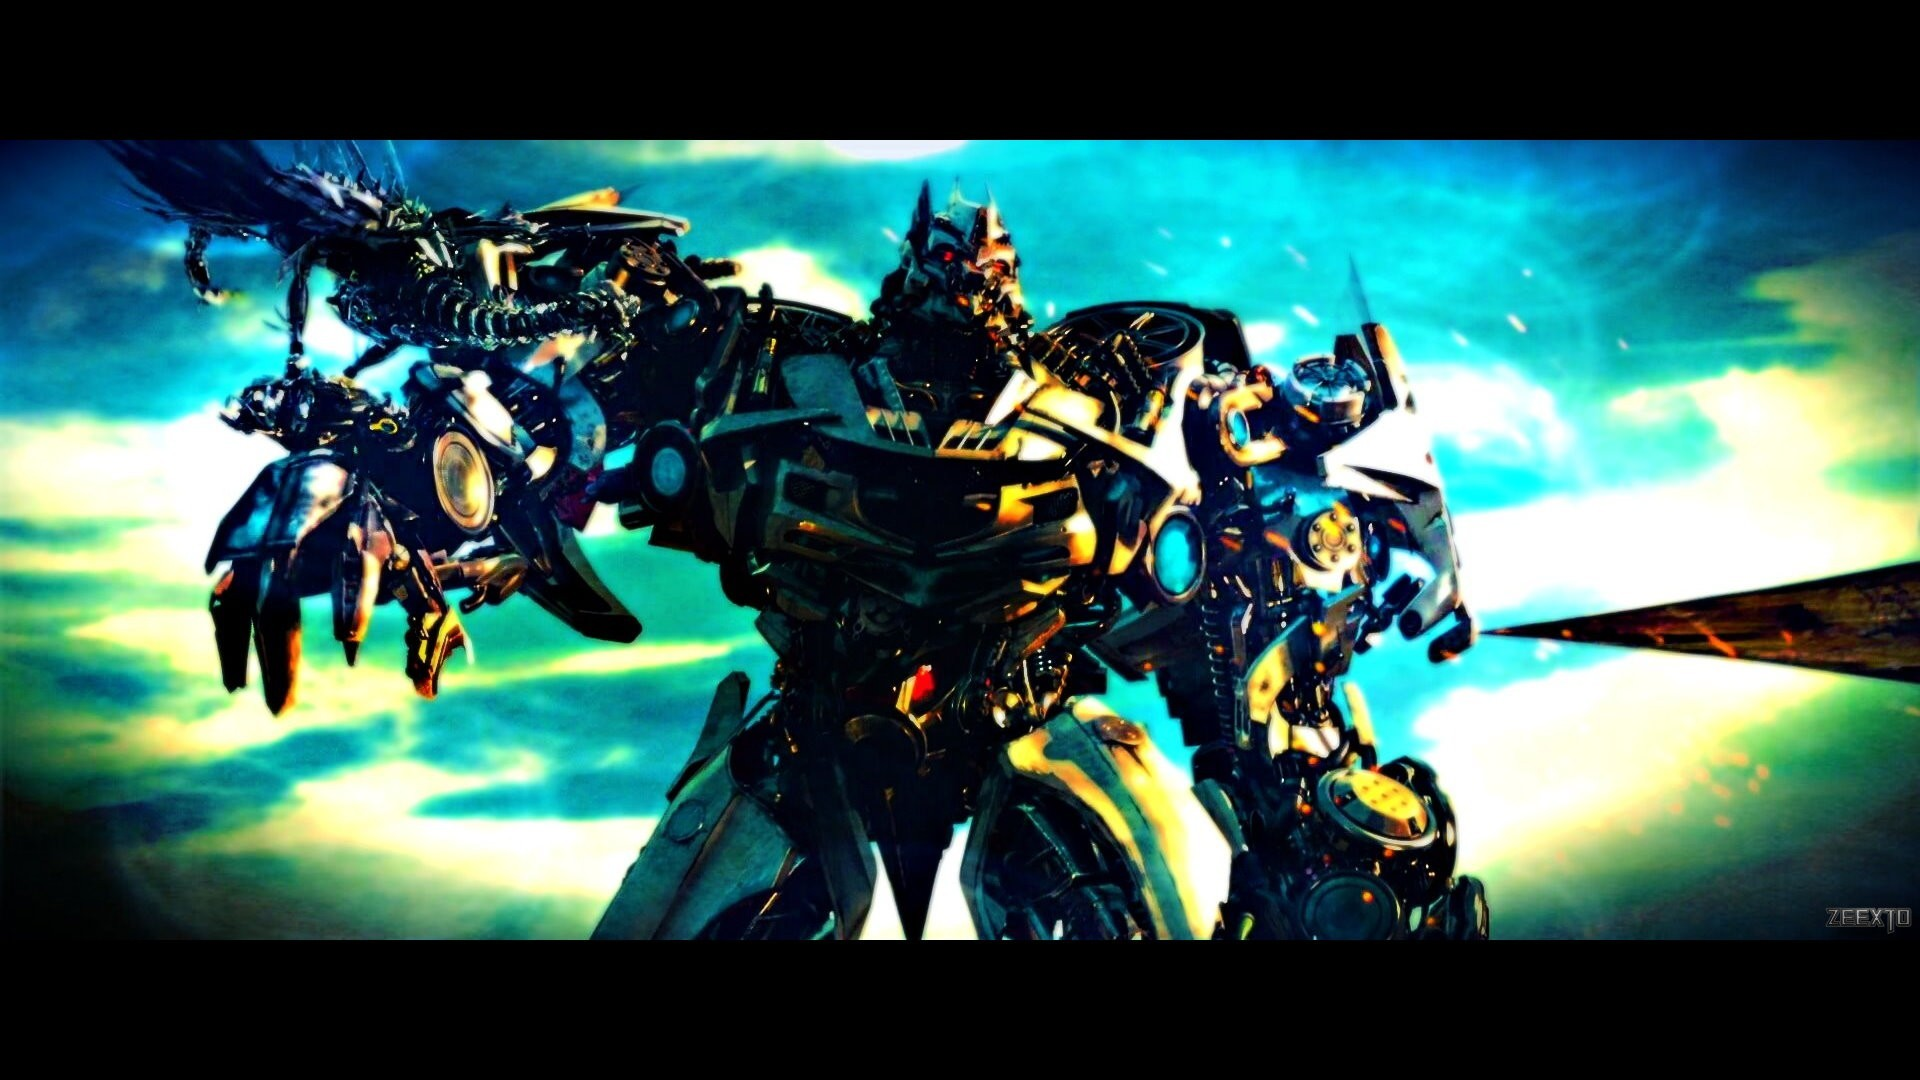 Robots Transformers optimus prime Megatron HD Wallpaper